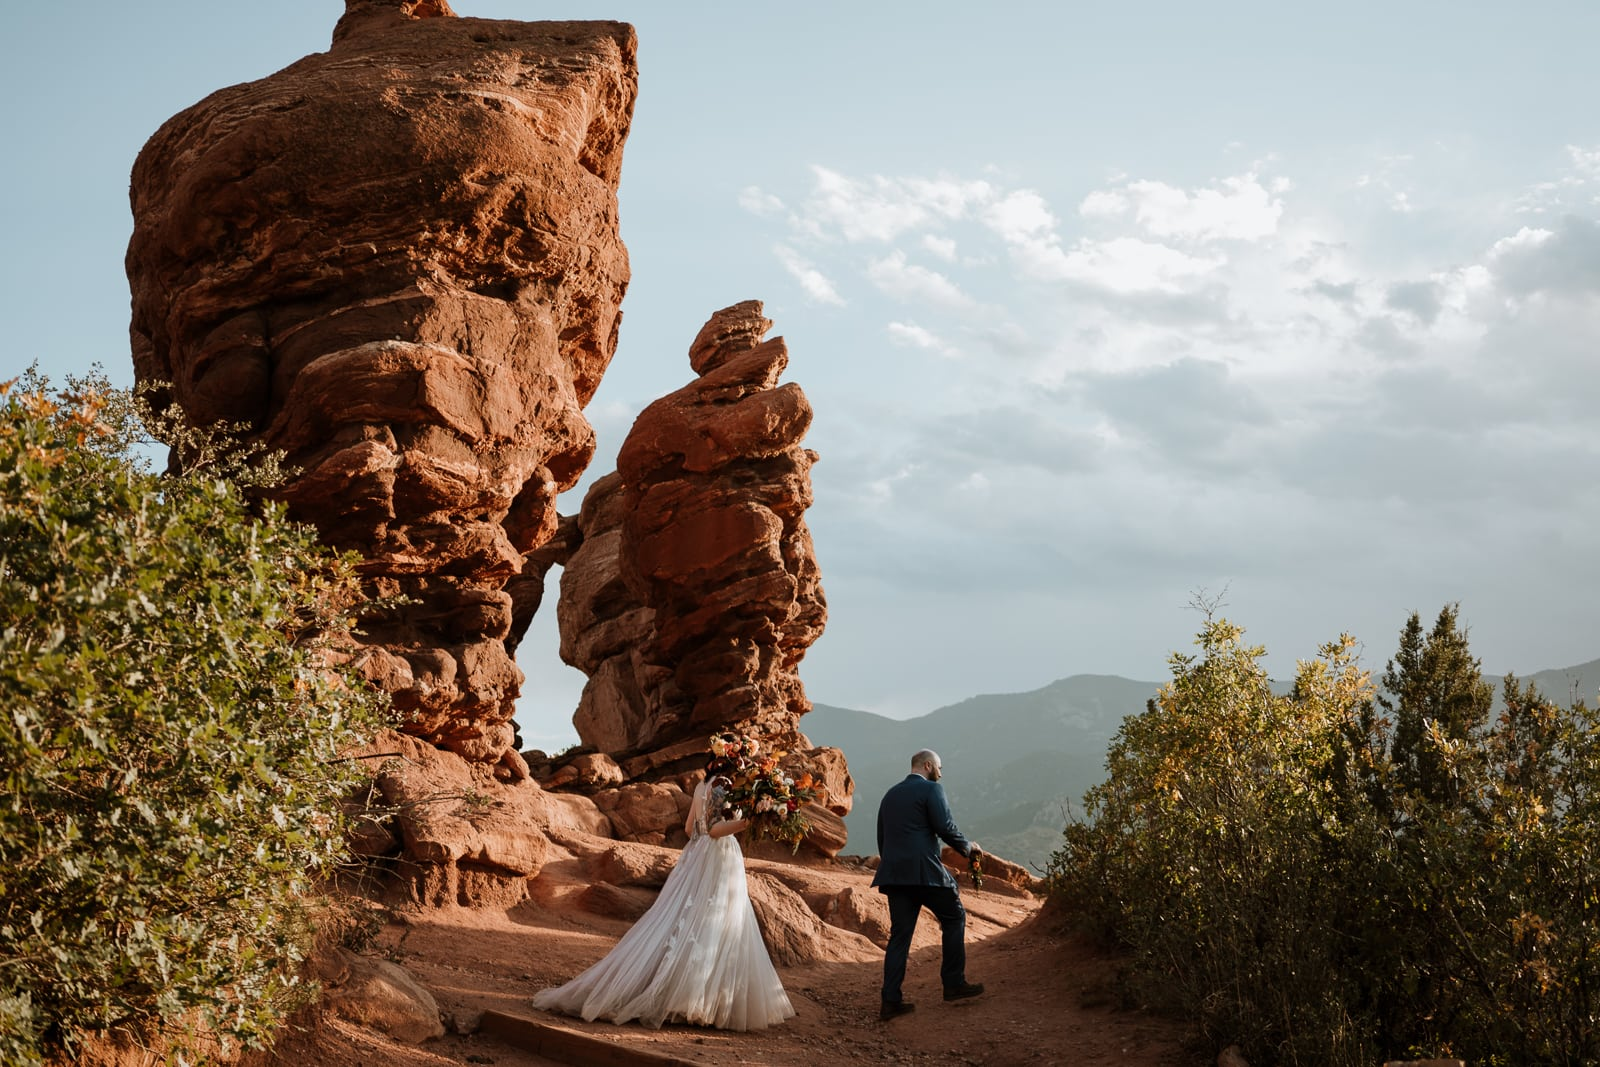 Bride and groom walking on the Siamese Twins Trail after eloping at Garden of the Gods in Colorado